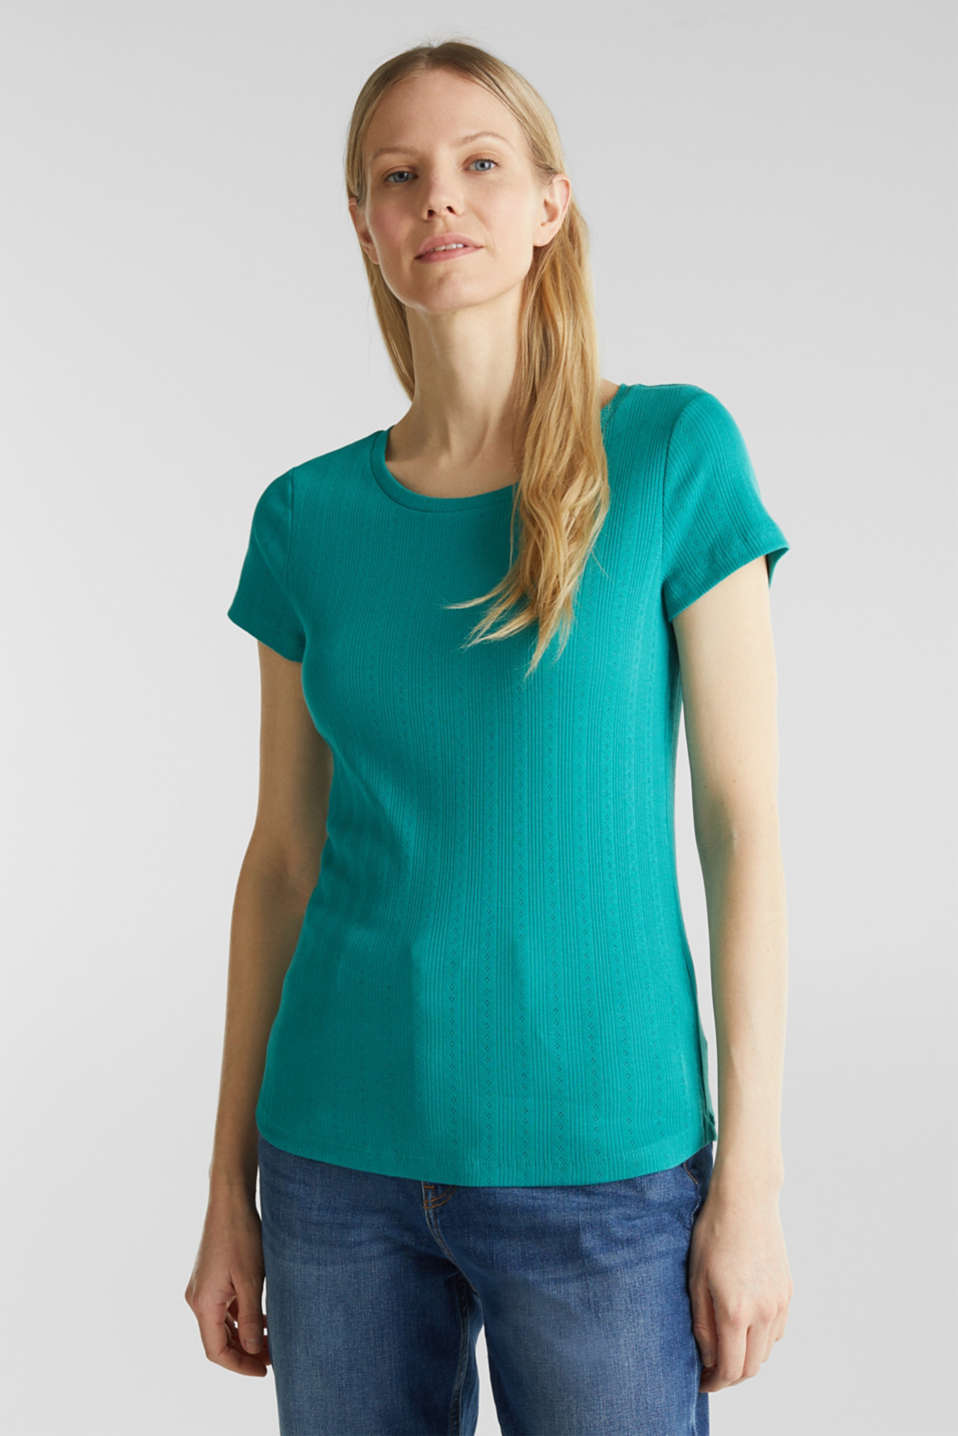 Openwork pattern top made of organic cotton, TEAL GREEN, detail image number 0